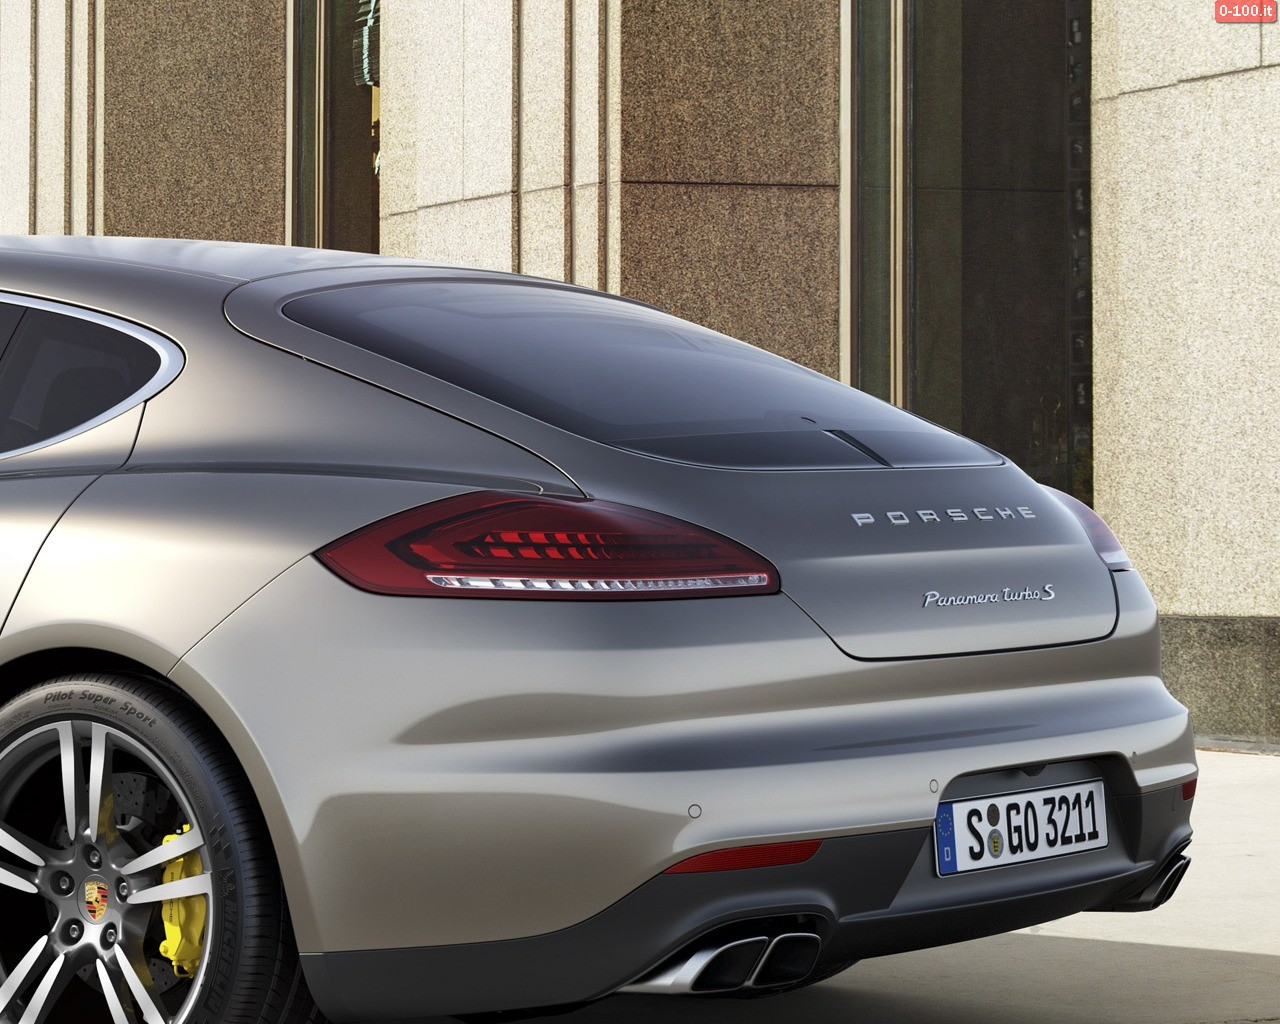 porsche-panamera-turbo-s-exclusive_0-100_6